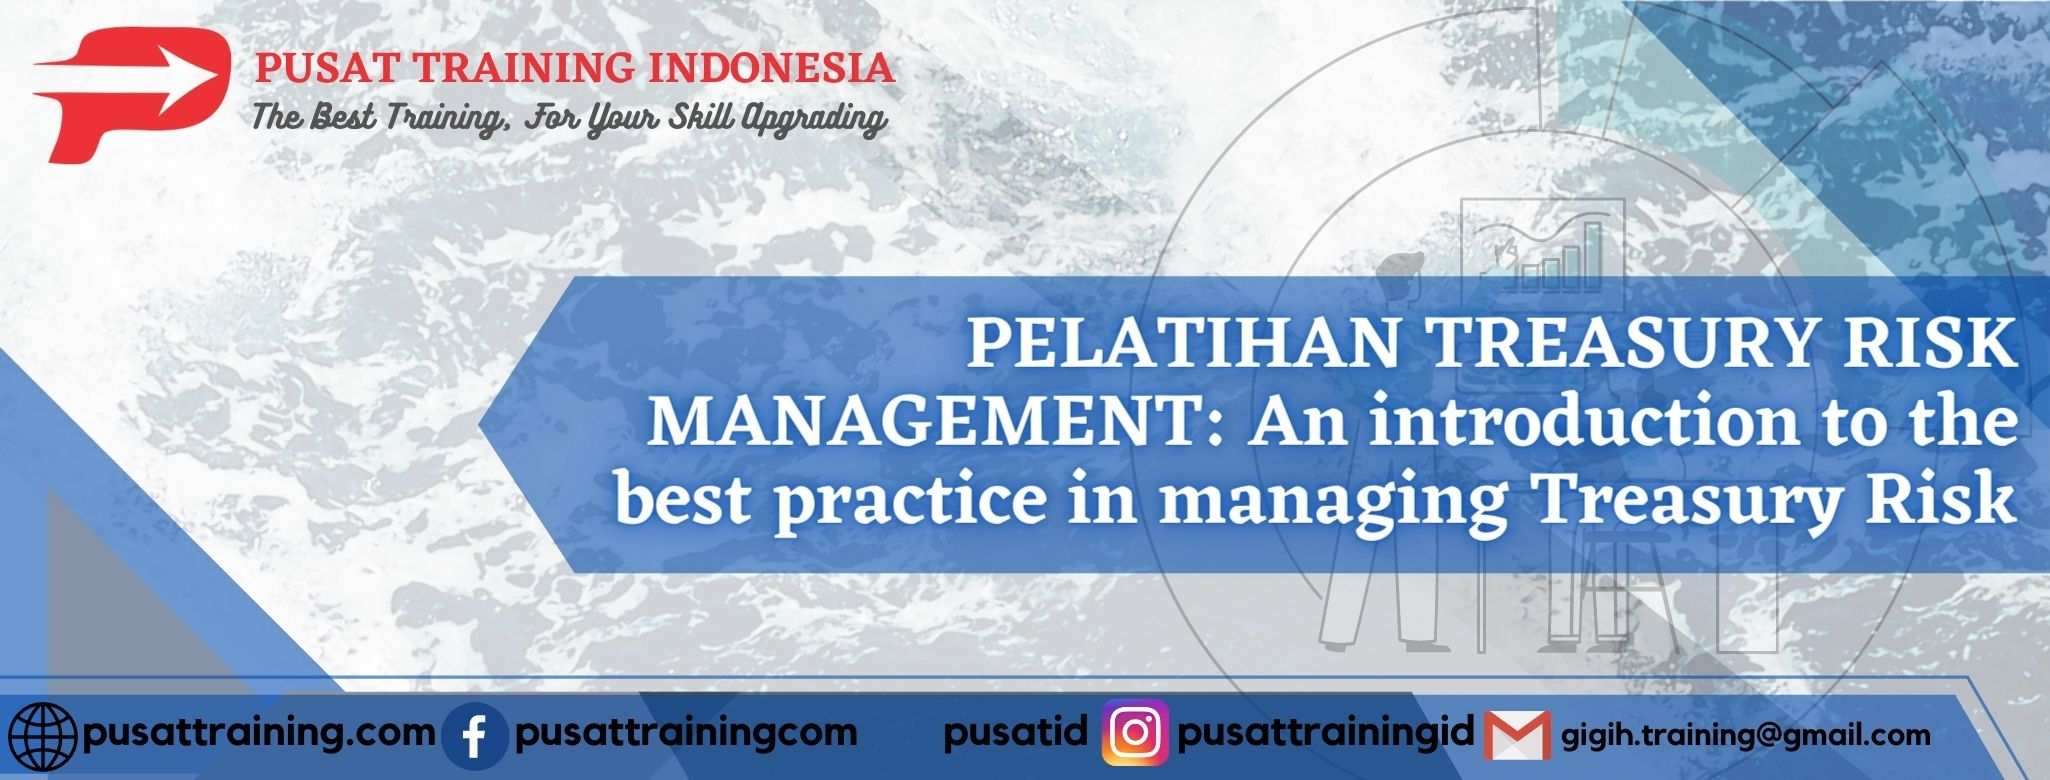 PELATIHAN-TREASURY-RISK-MANAGEMENT-An-introduction-to-the-best-practice-in-managing-Treasury-Risk